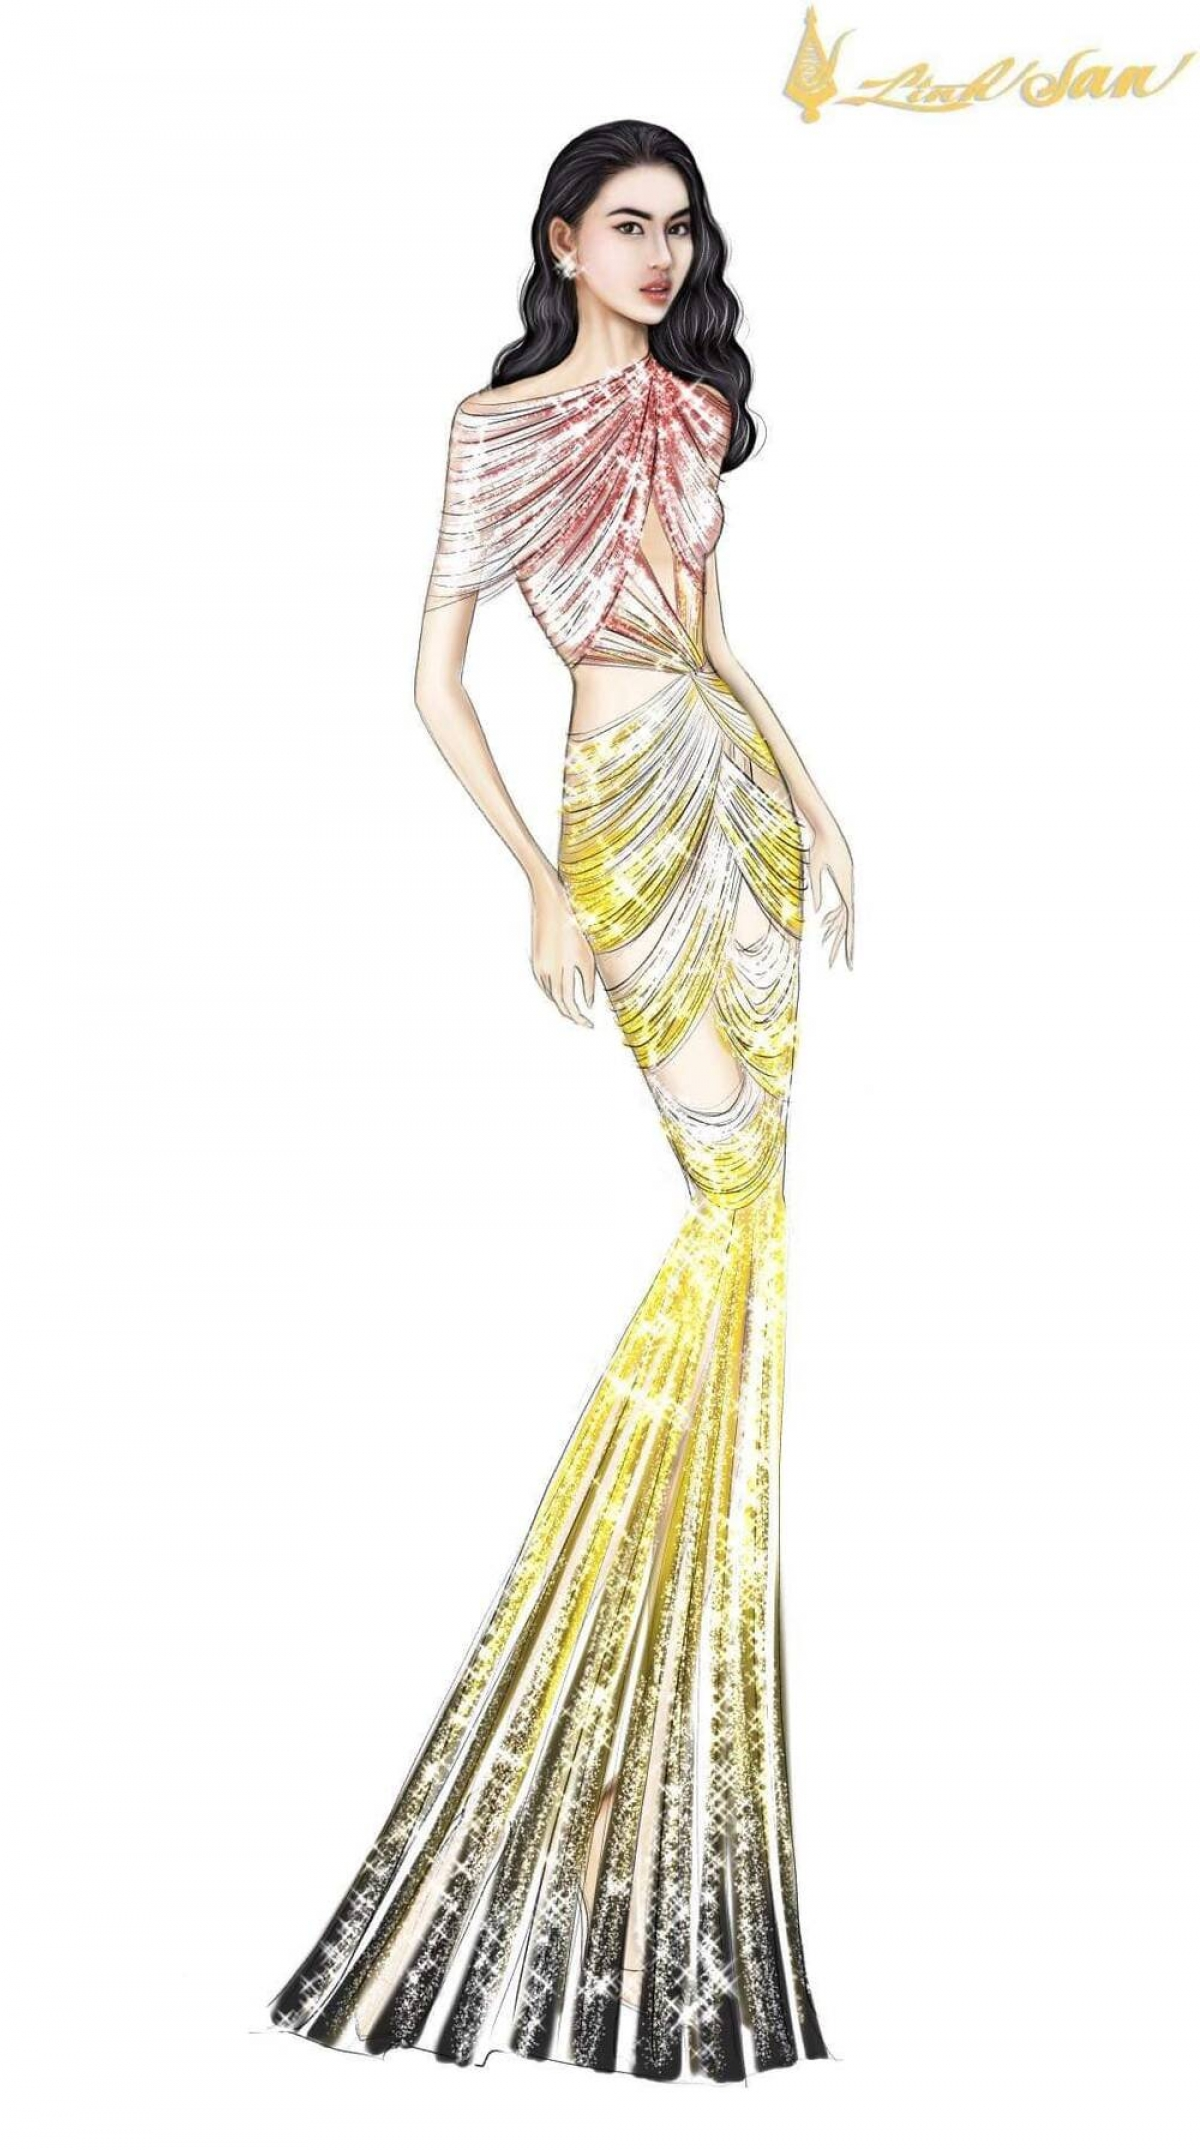 She anticipates that the yellow design will help her achieve her goals in the pageant, similar to other Vietnamese contestants in the past, such as Phuong Nga and Kieu Loan, both of whom claimed Top 10 finishes in the 2018 and 2019 version, respectively.